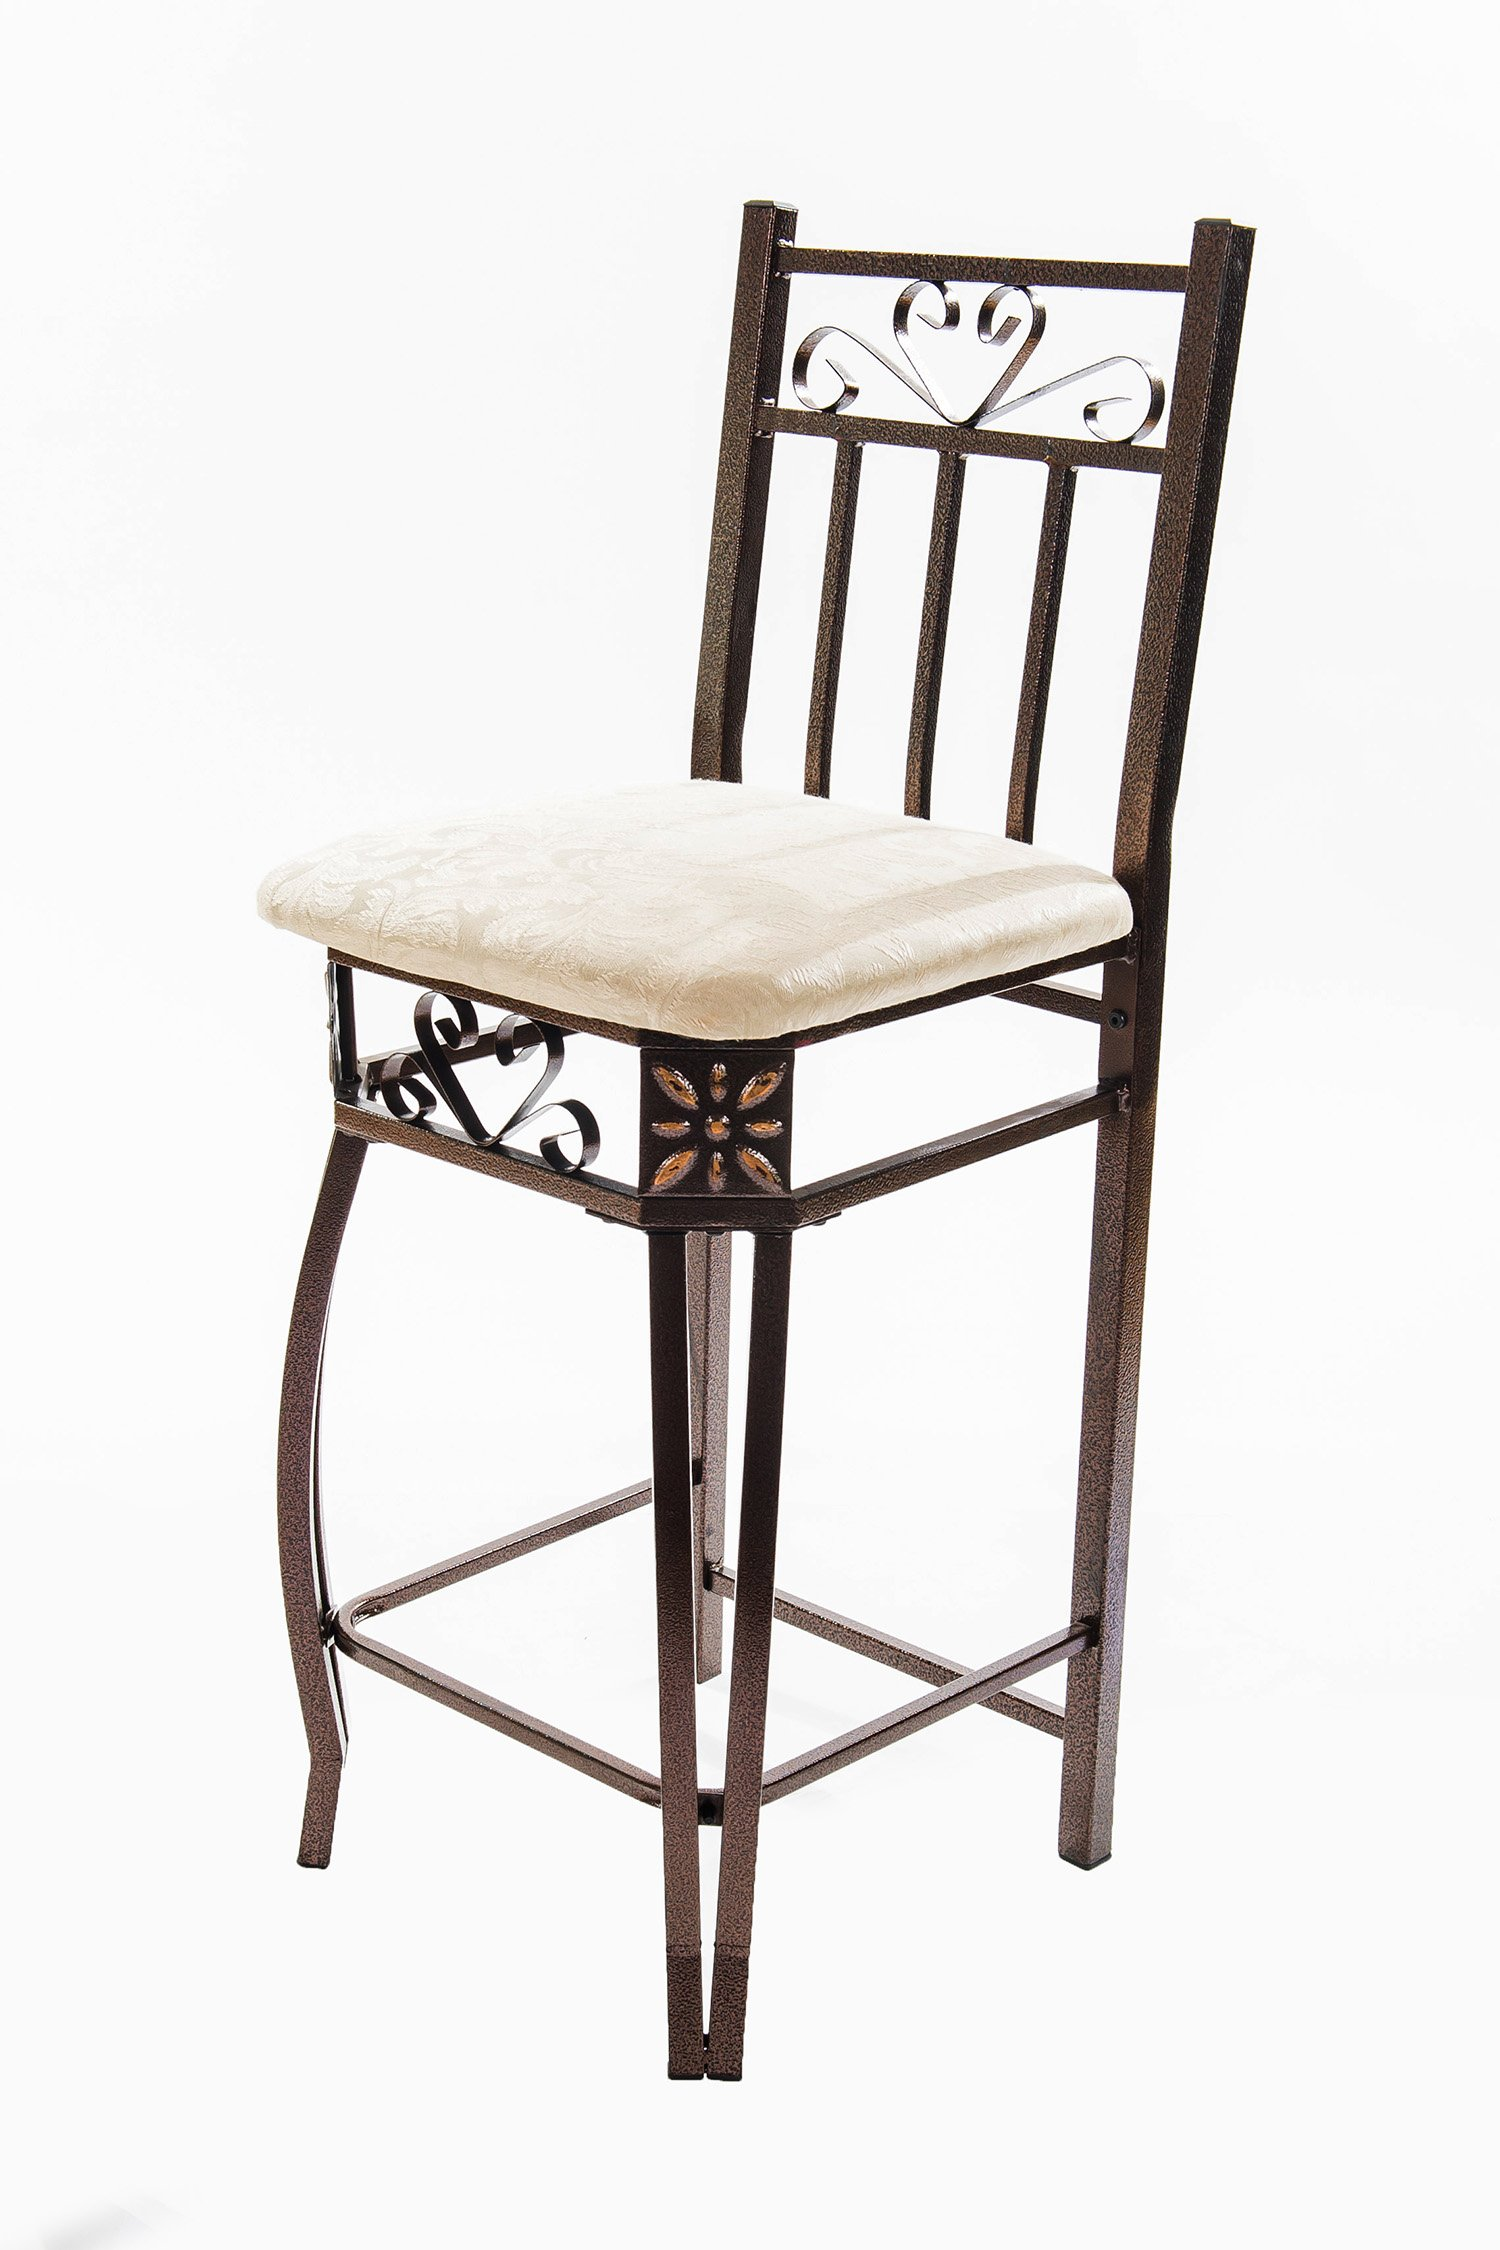 Home Source Industries Barcelona Bronze Metal Counter Bistro Set with Light Wood Table Top and 2 Chairs by Home Source Industries (Image #4)